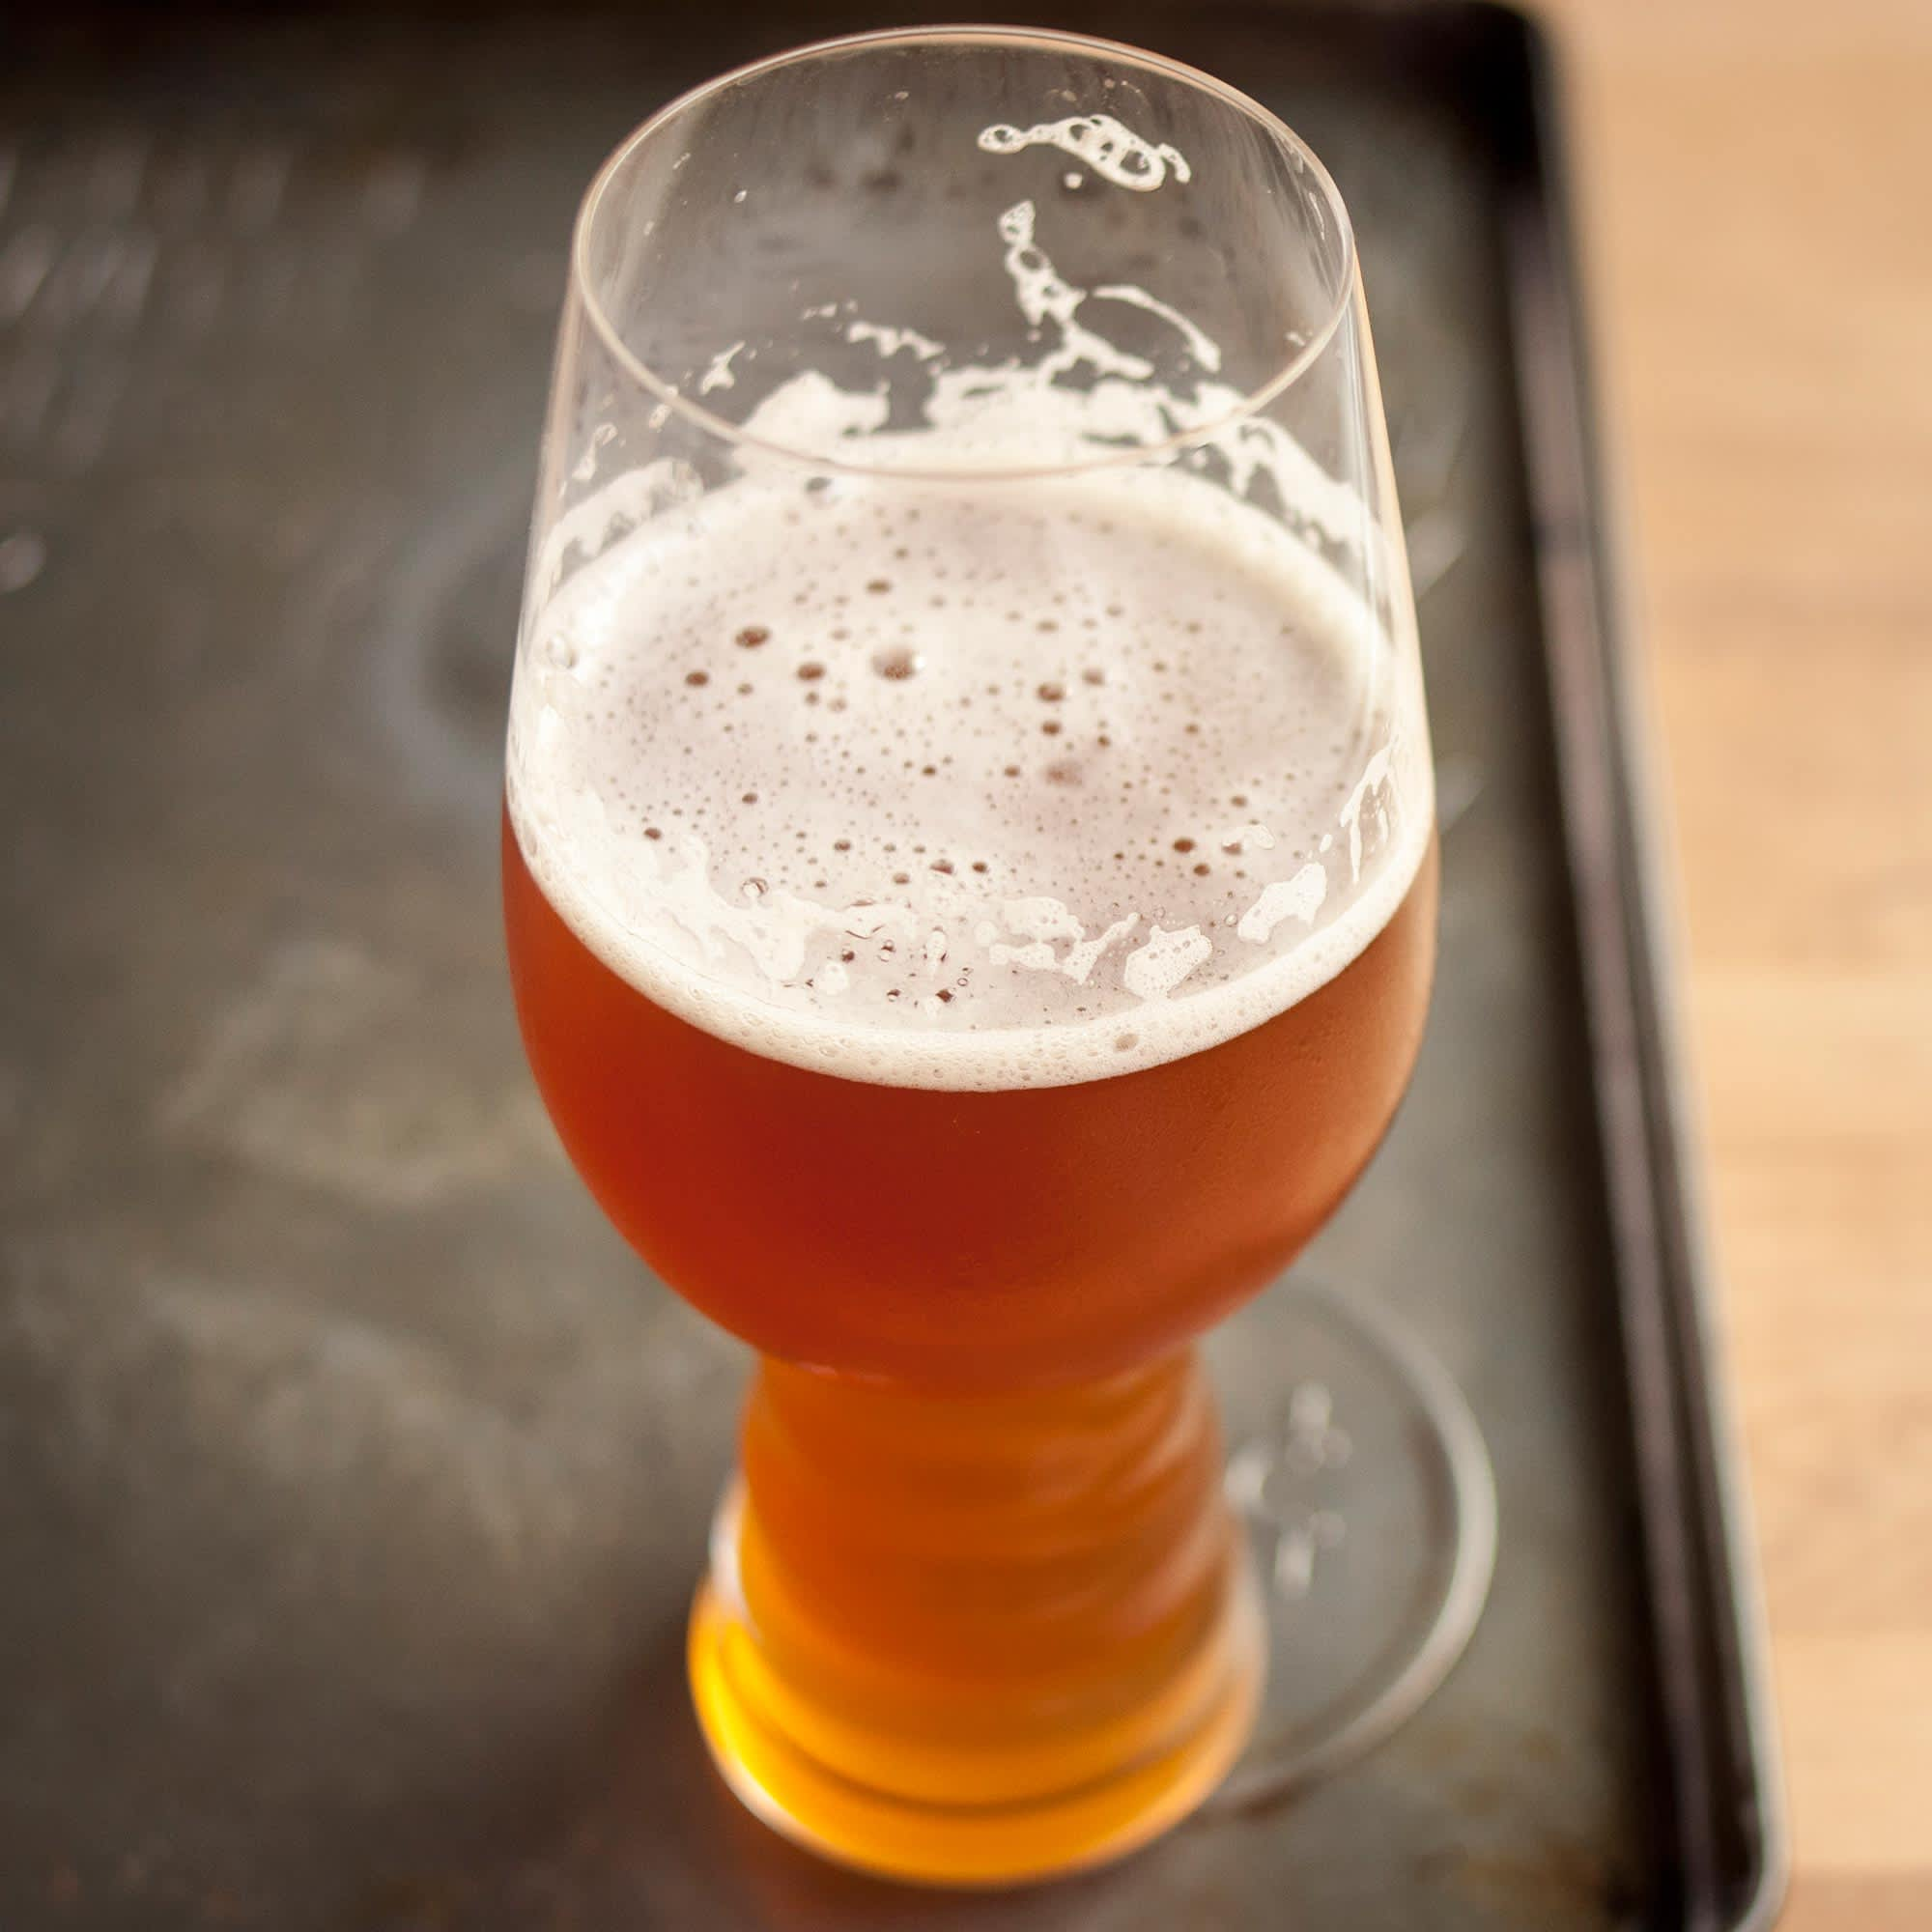 The Spiegelau IPA Glass